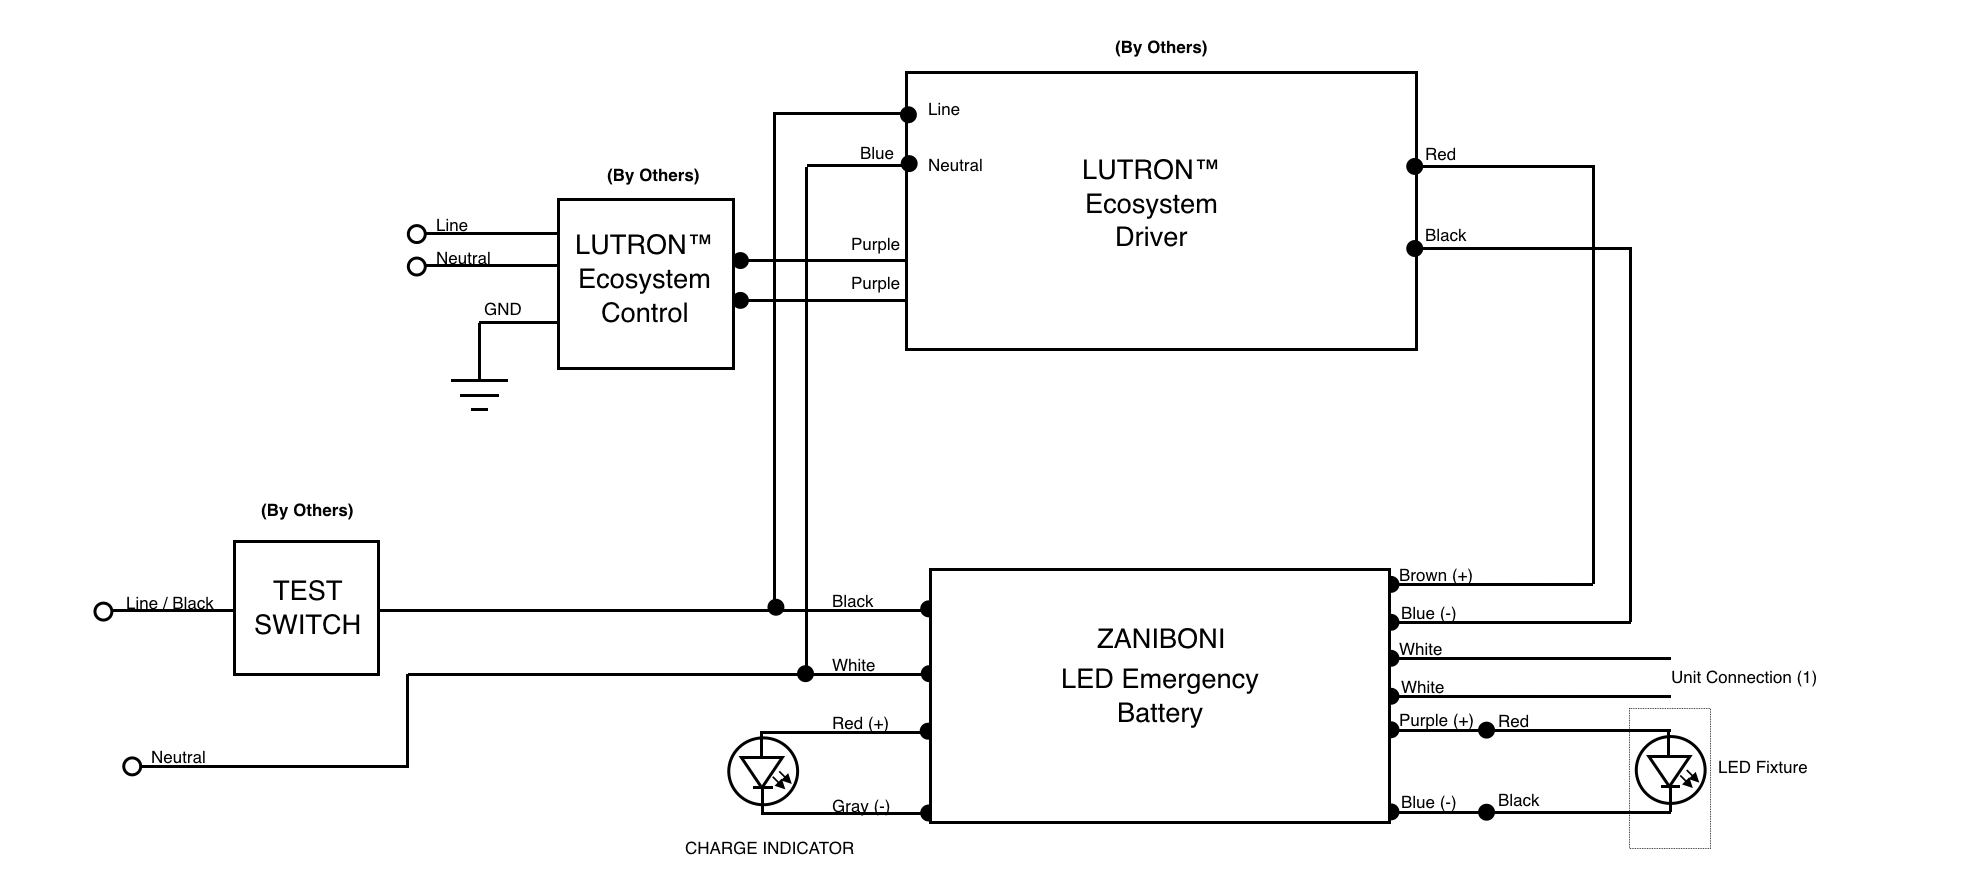 Lutron Wiring Diagram from portal.zanibonilighting.com